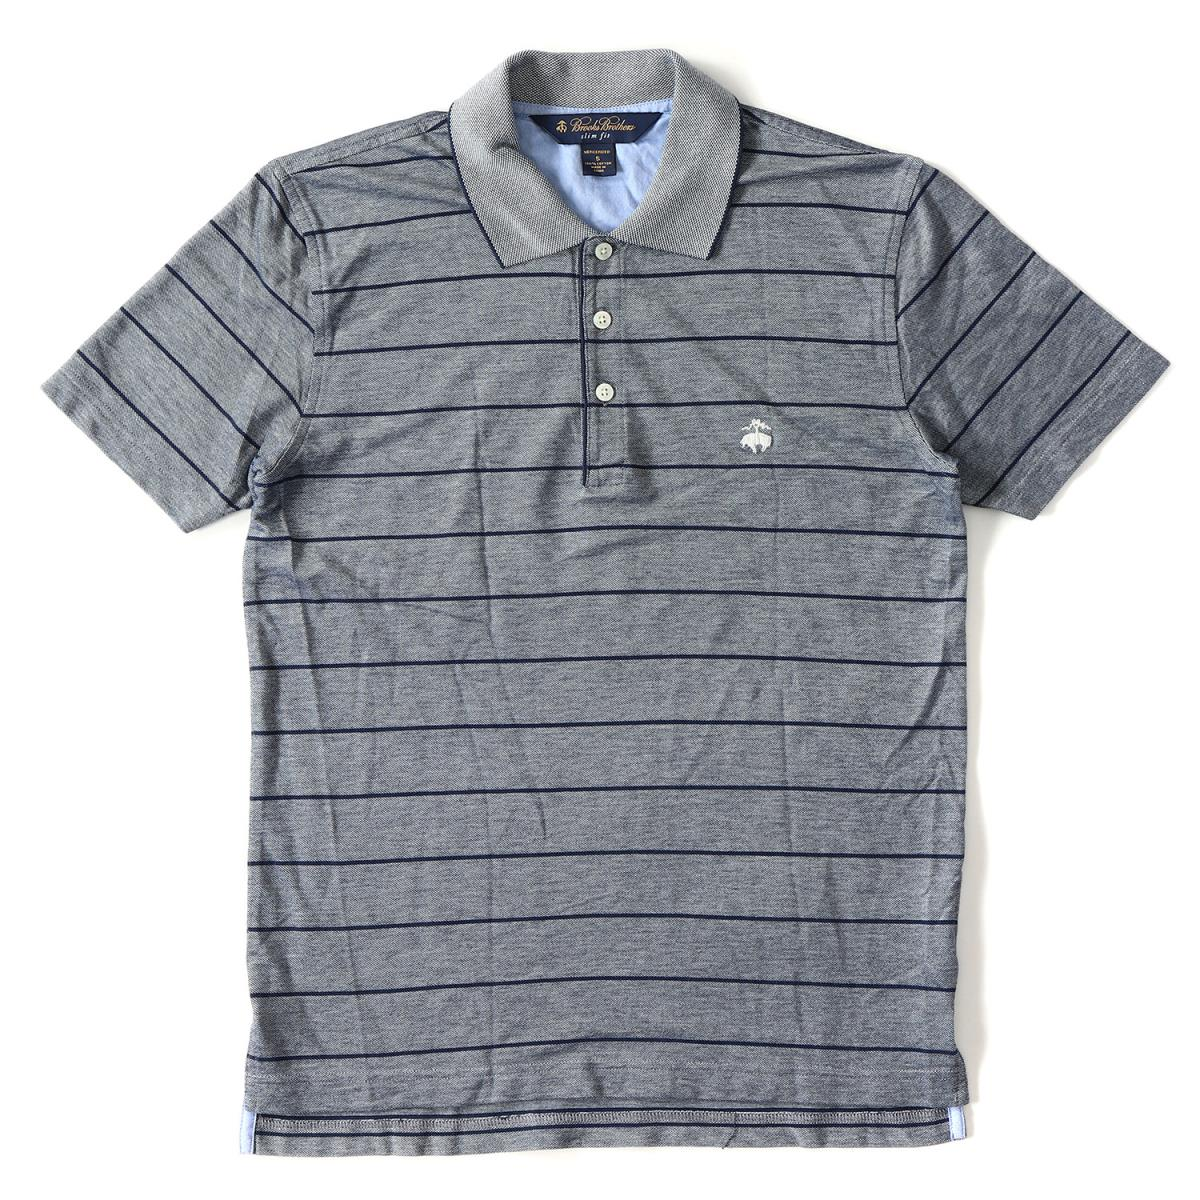 940b089d BROOKS BROTHERS (Brooks Brothers) icon embroidery horizontal stripe fawn  cotton short sleeves polo shirt ...